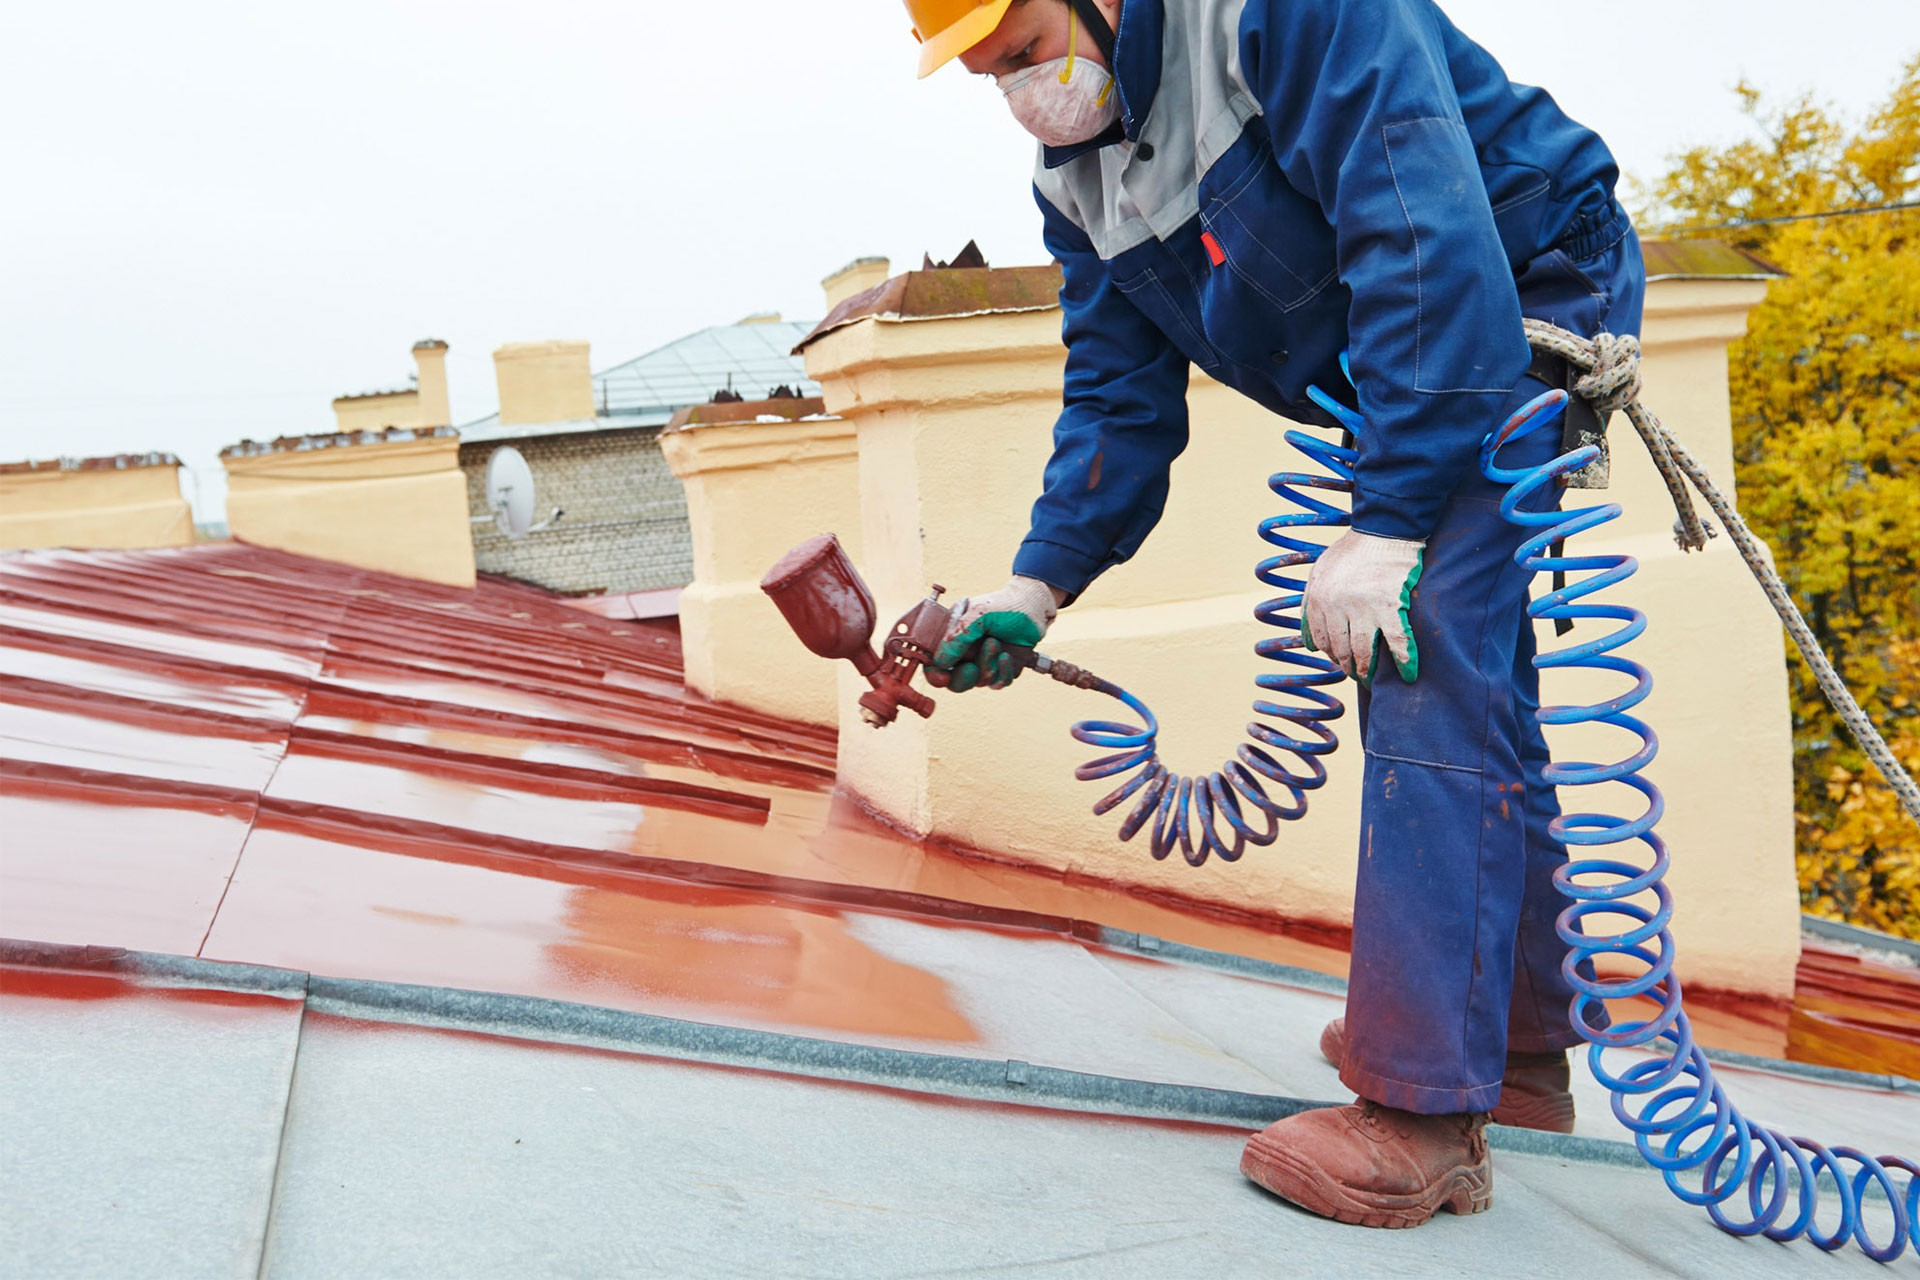 Woden-Nacodoches TX Professional Painting Contractors-We offer Residential & Commercial Painting, Interior Painting, Exterior Painting, Primer Painting, Industrial Painting, Professional Painters, Institutional Painters, and more.